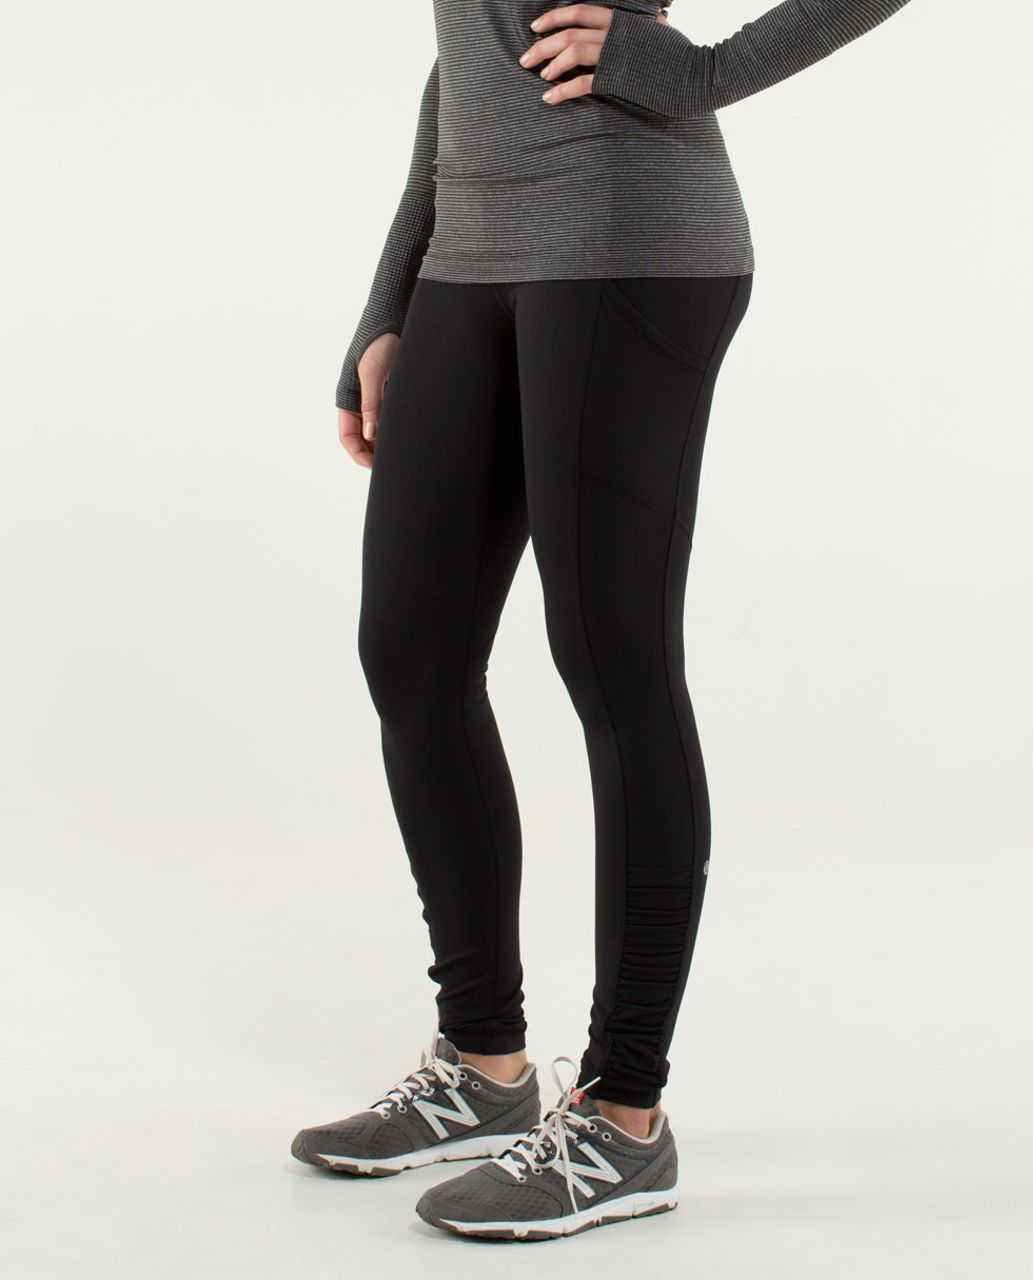 Lululemon Speed Tight *Cozy - Black / Slalom Stripe Pretty Pink